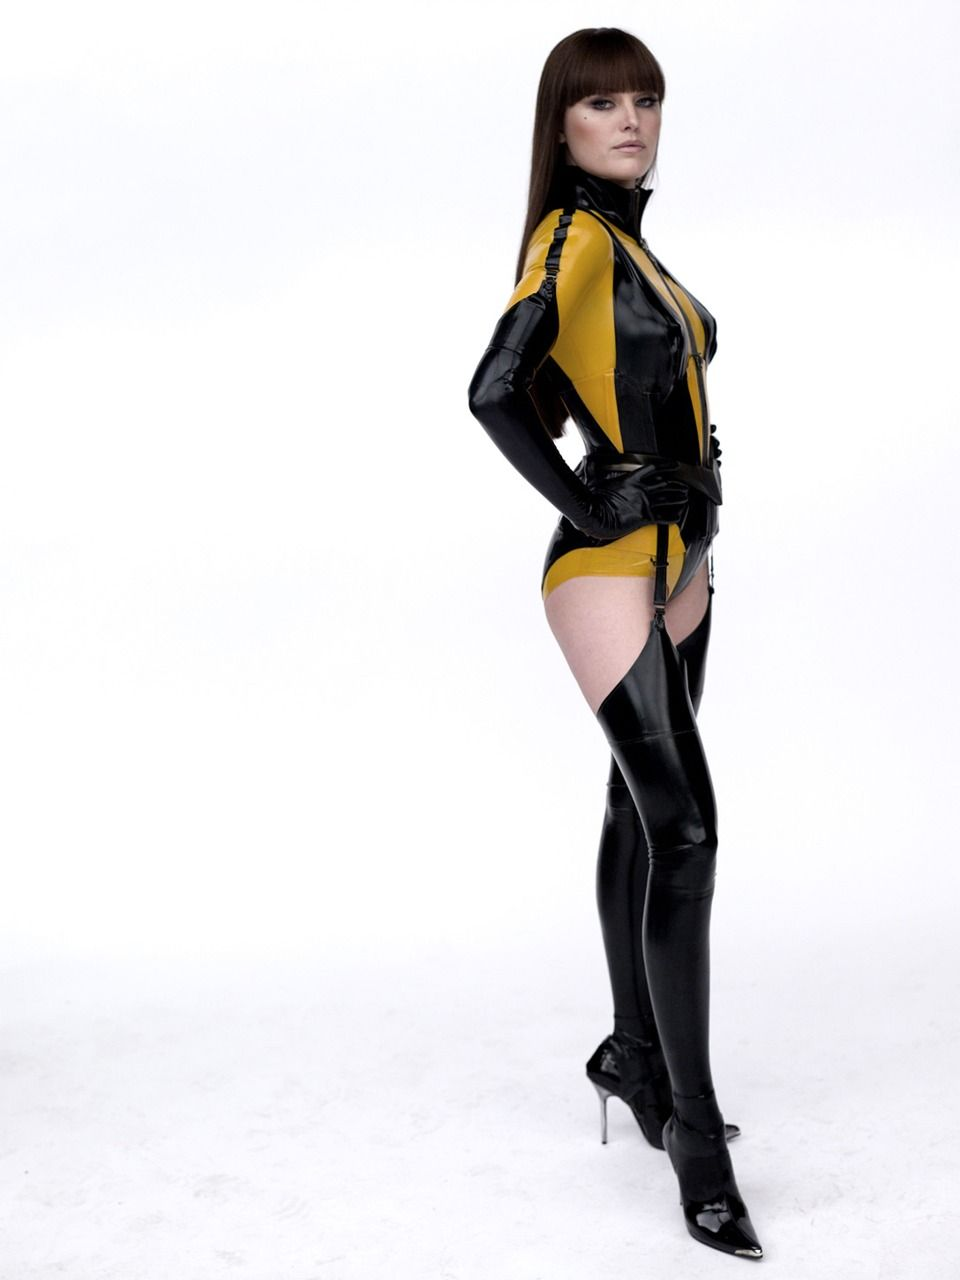 Malin Åkerman as Silk Spectre II u0026 my 2010 Halloween costume  sc 1 st  Pinterest : silk specter costume  - Germanpascual.Com